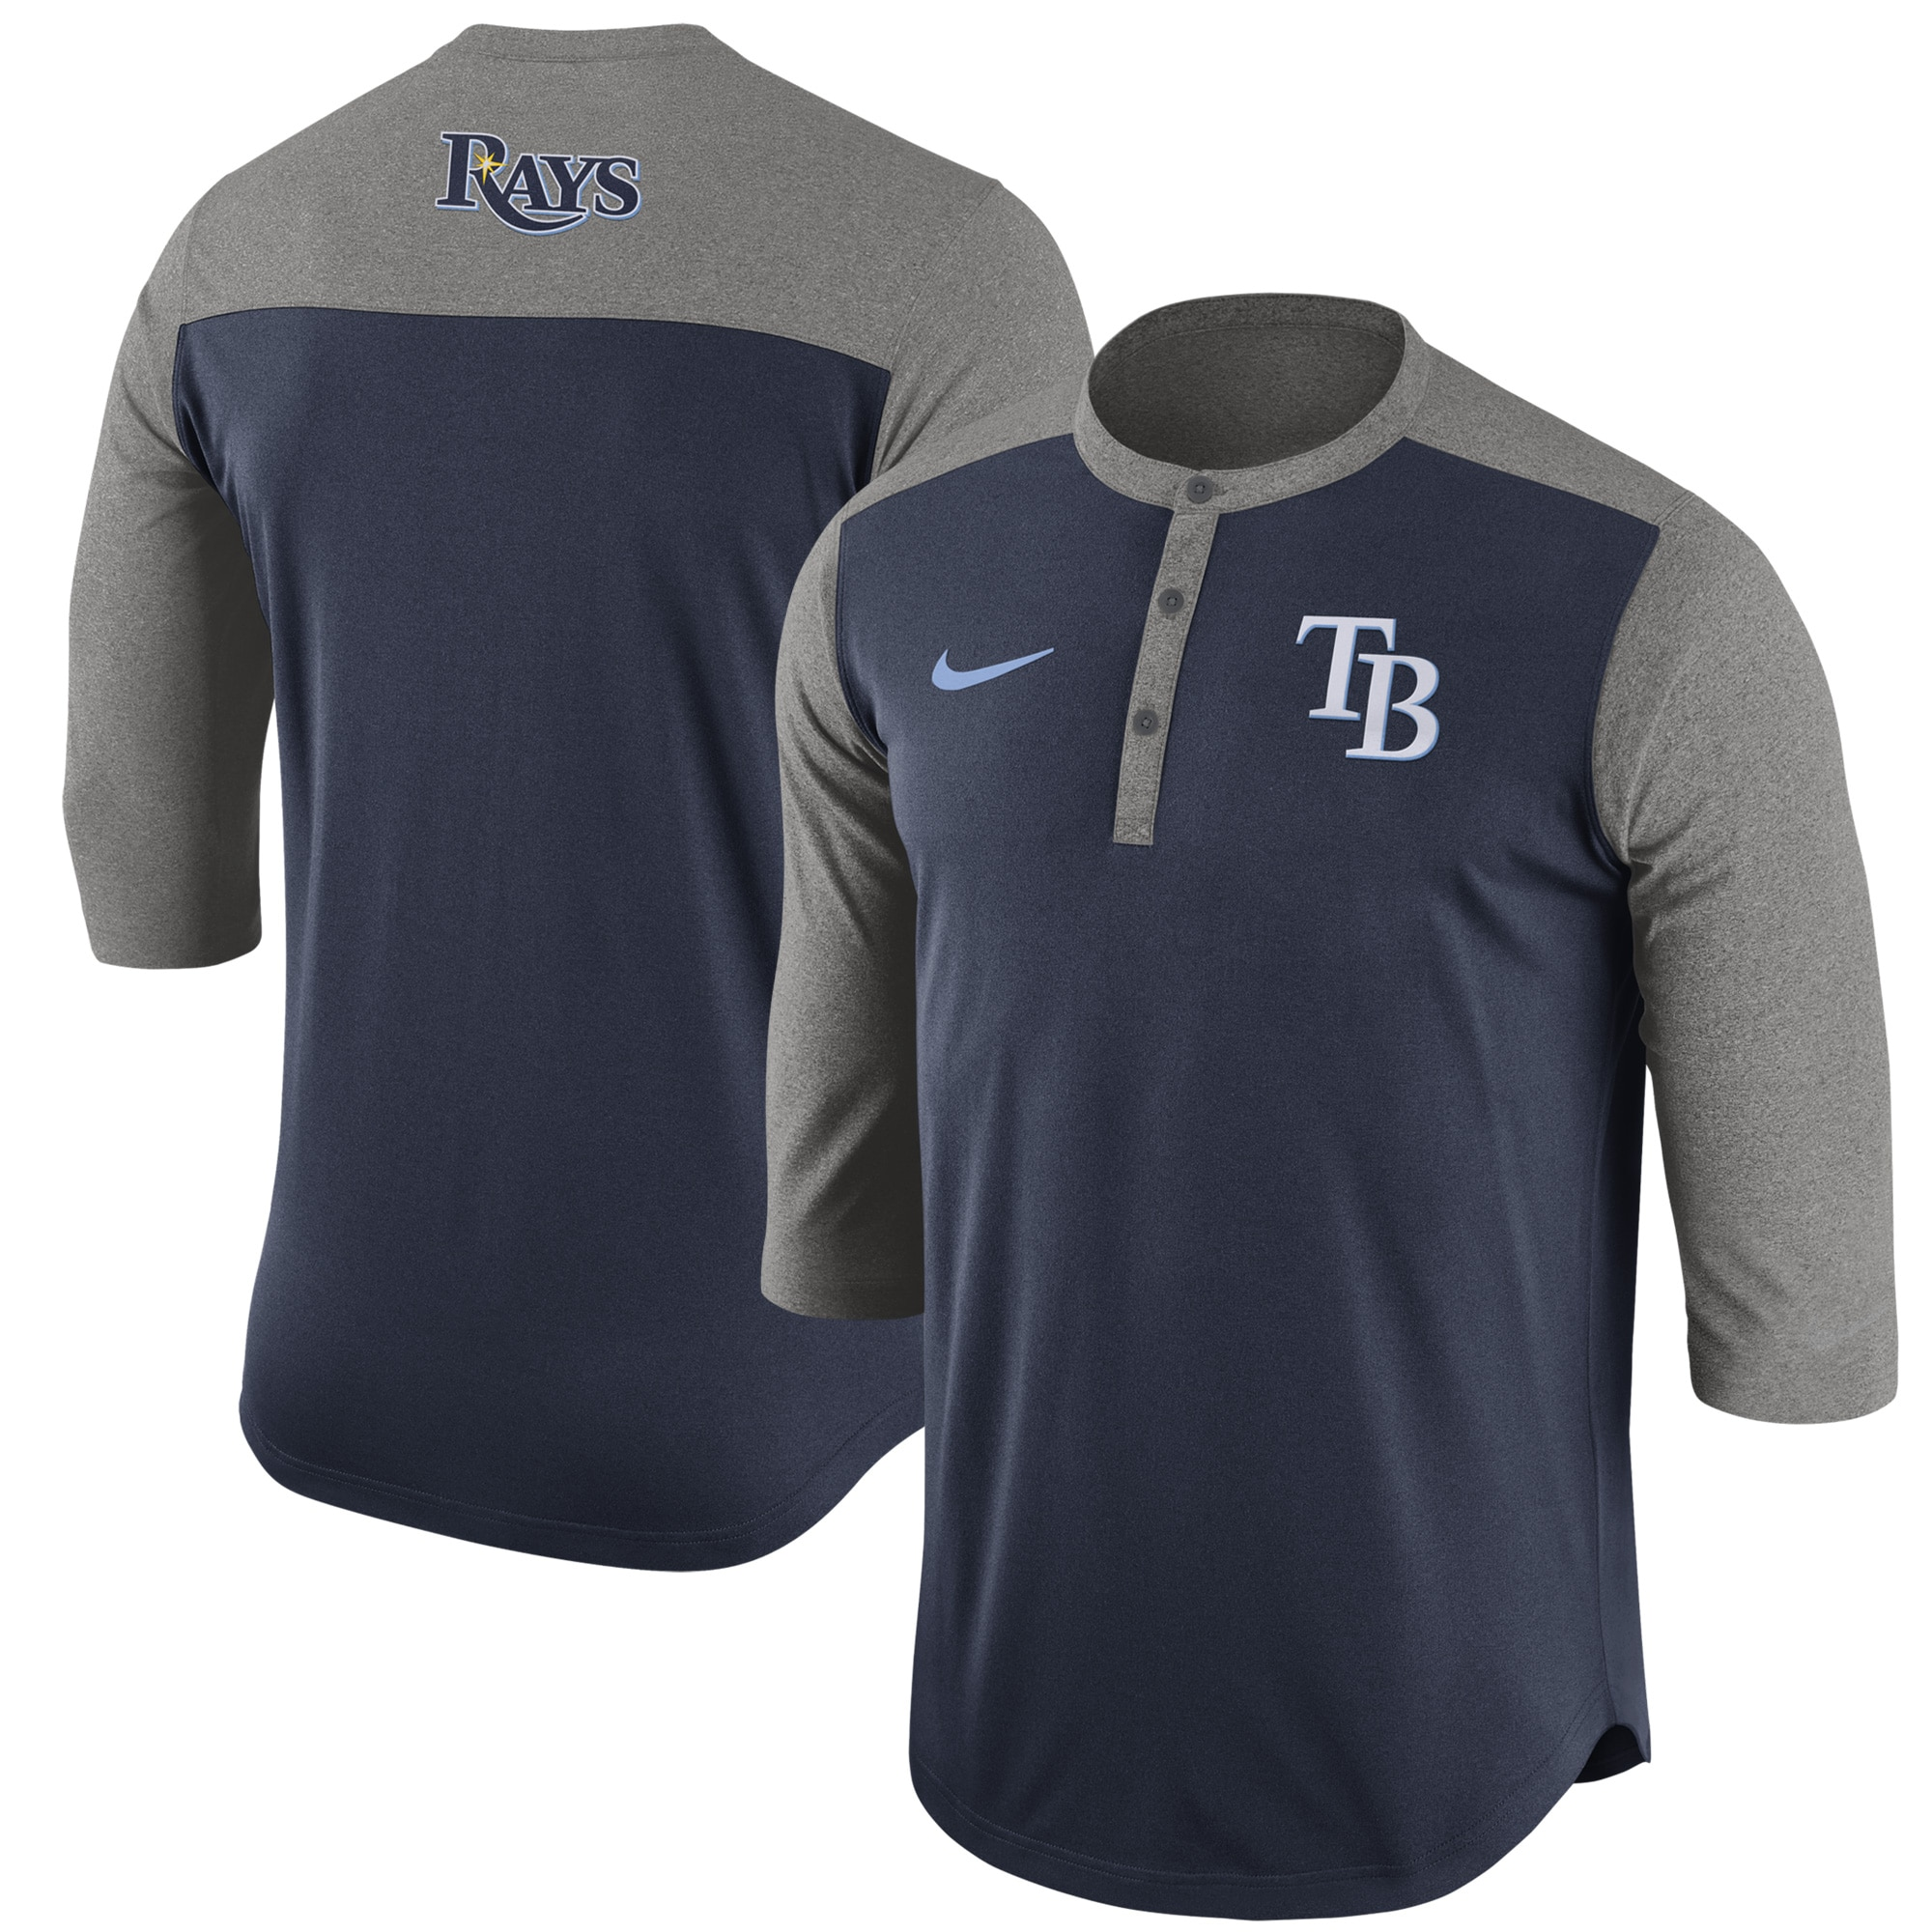 Tampa Bay Rays Nike Dry Henley 3/4-Sleeve Performance T-Shirt - Navy